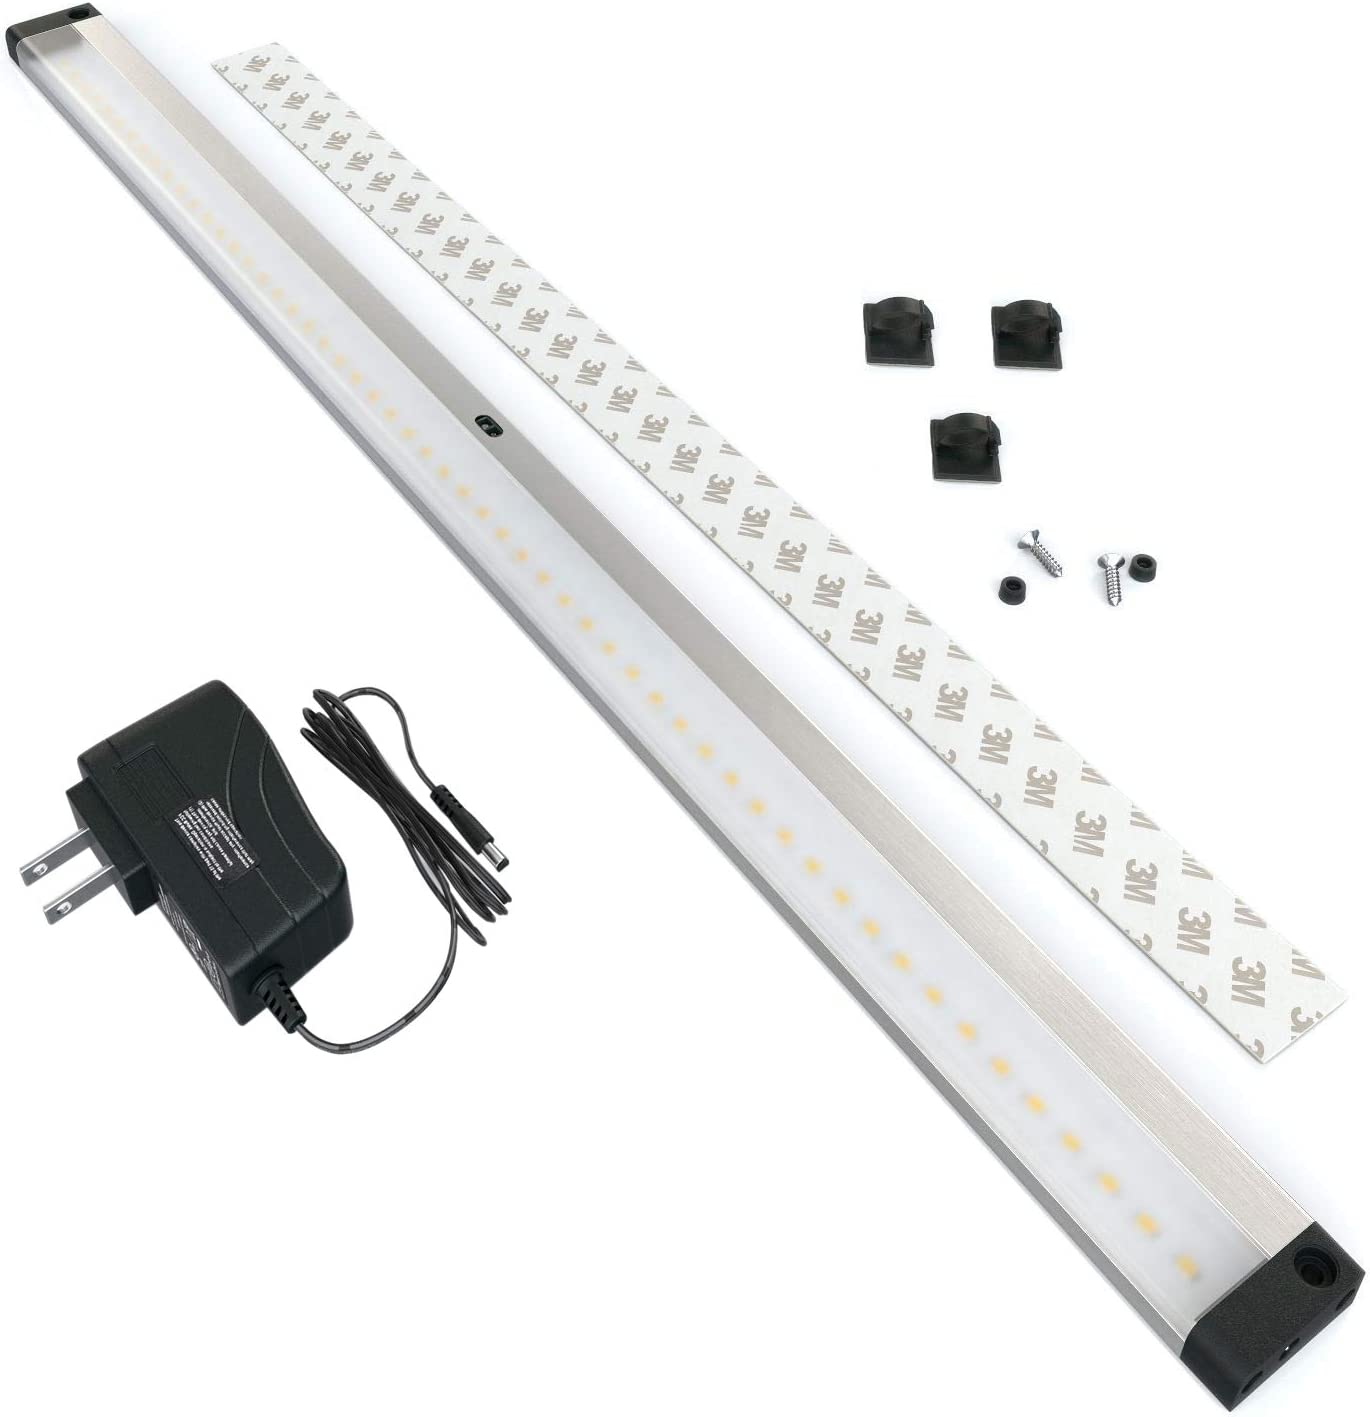 EShine LED Dimmable Under Cabinet Lighting – Extra Long 20 Inch Panel, Hand Wave Activated – Touchless Dimming Control, Cool White 6000K